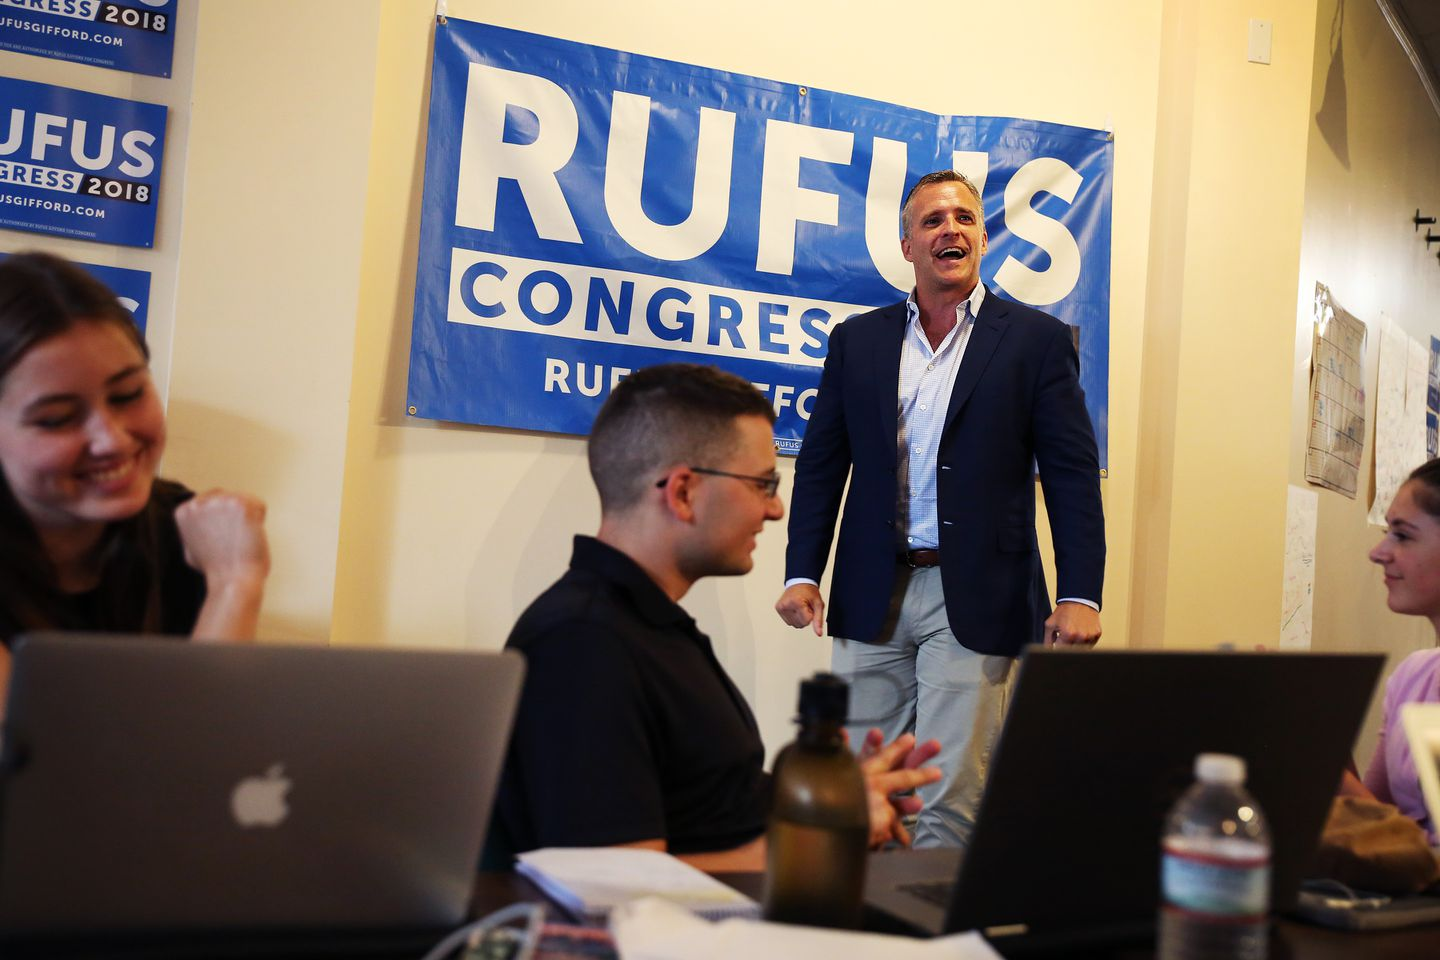 US Ambassador to Denmark Rufus Gifford spoke to volunteers at a Get Out the Vote Rally in his downtown Lowell offices.